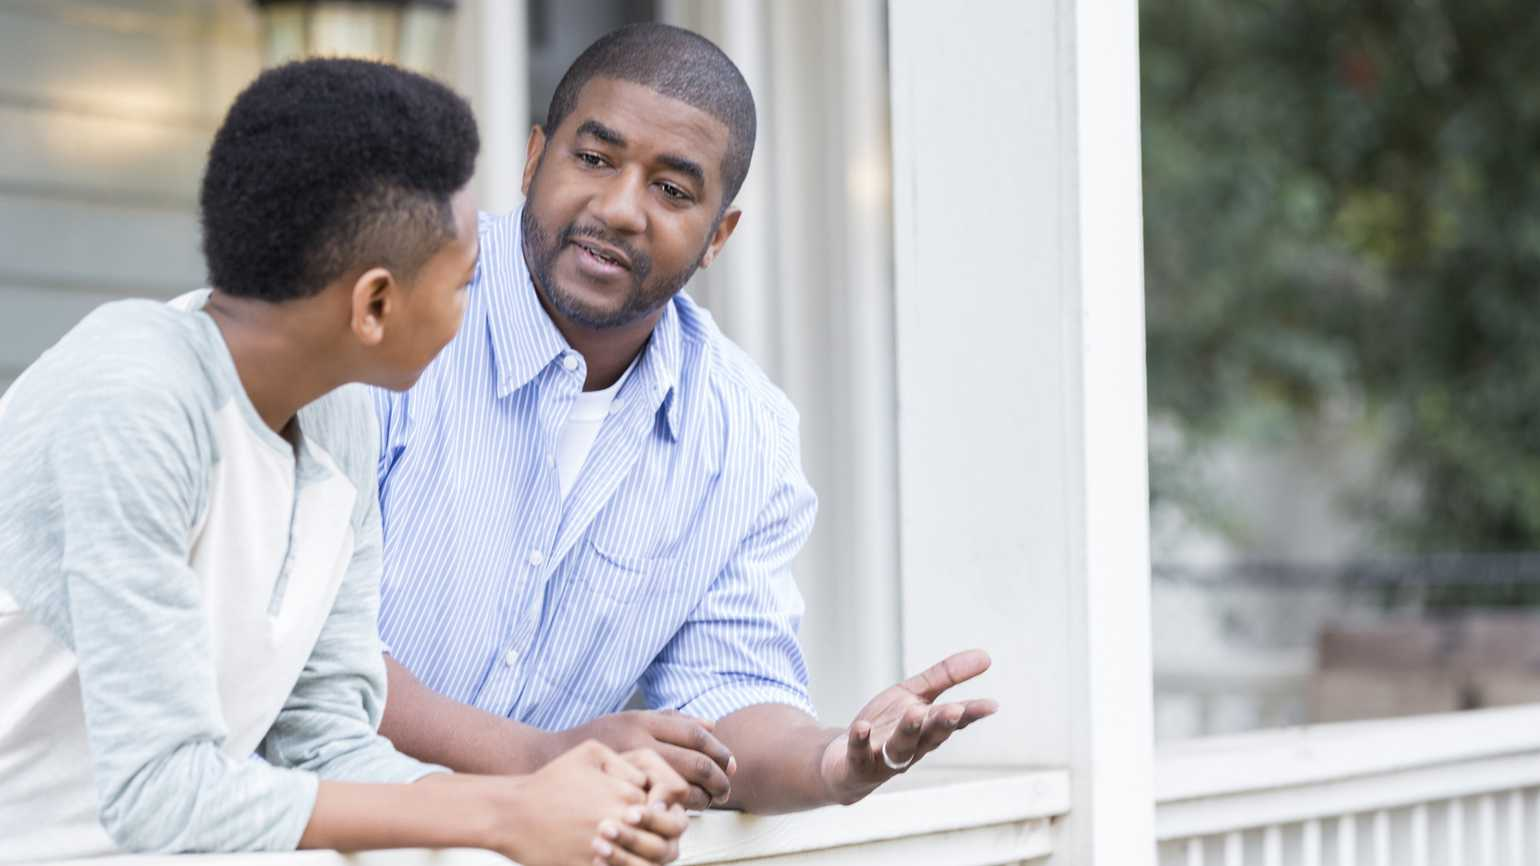 Father and son in serious front porch conversation.